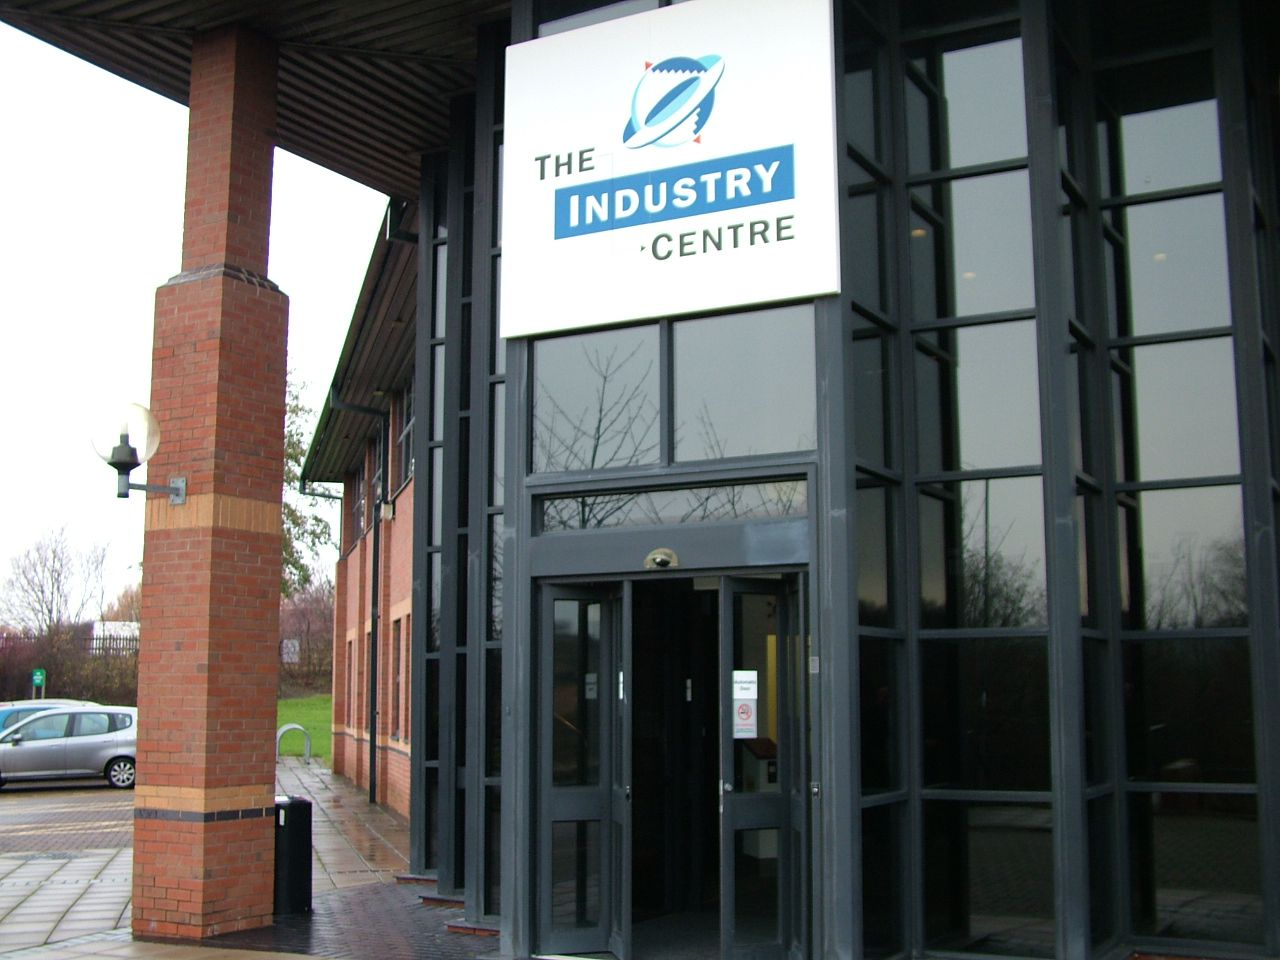 Outside of The Industry Centre